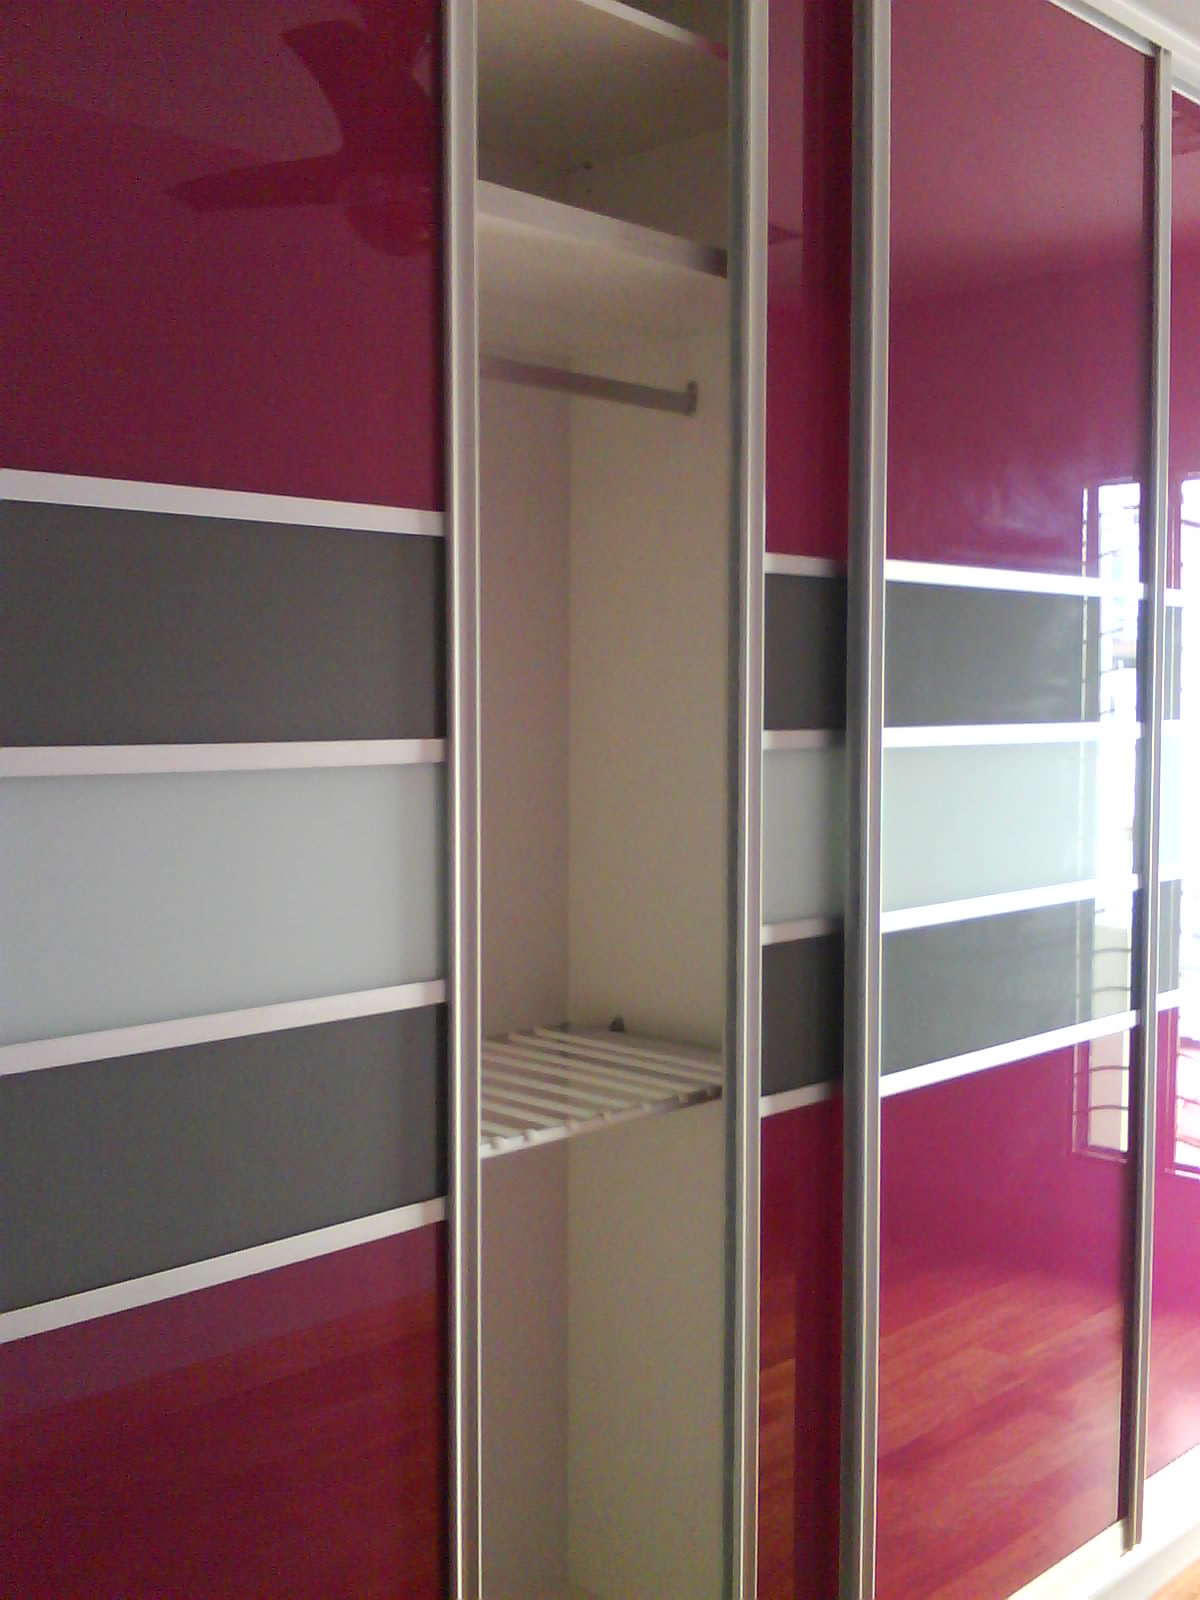 Cabinet design kuala lumpur puchong cabinet sliding door for Bedroom wardrobe designs with dressing table